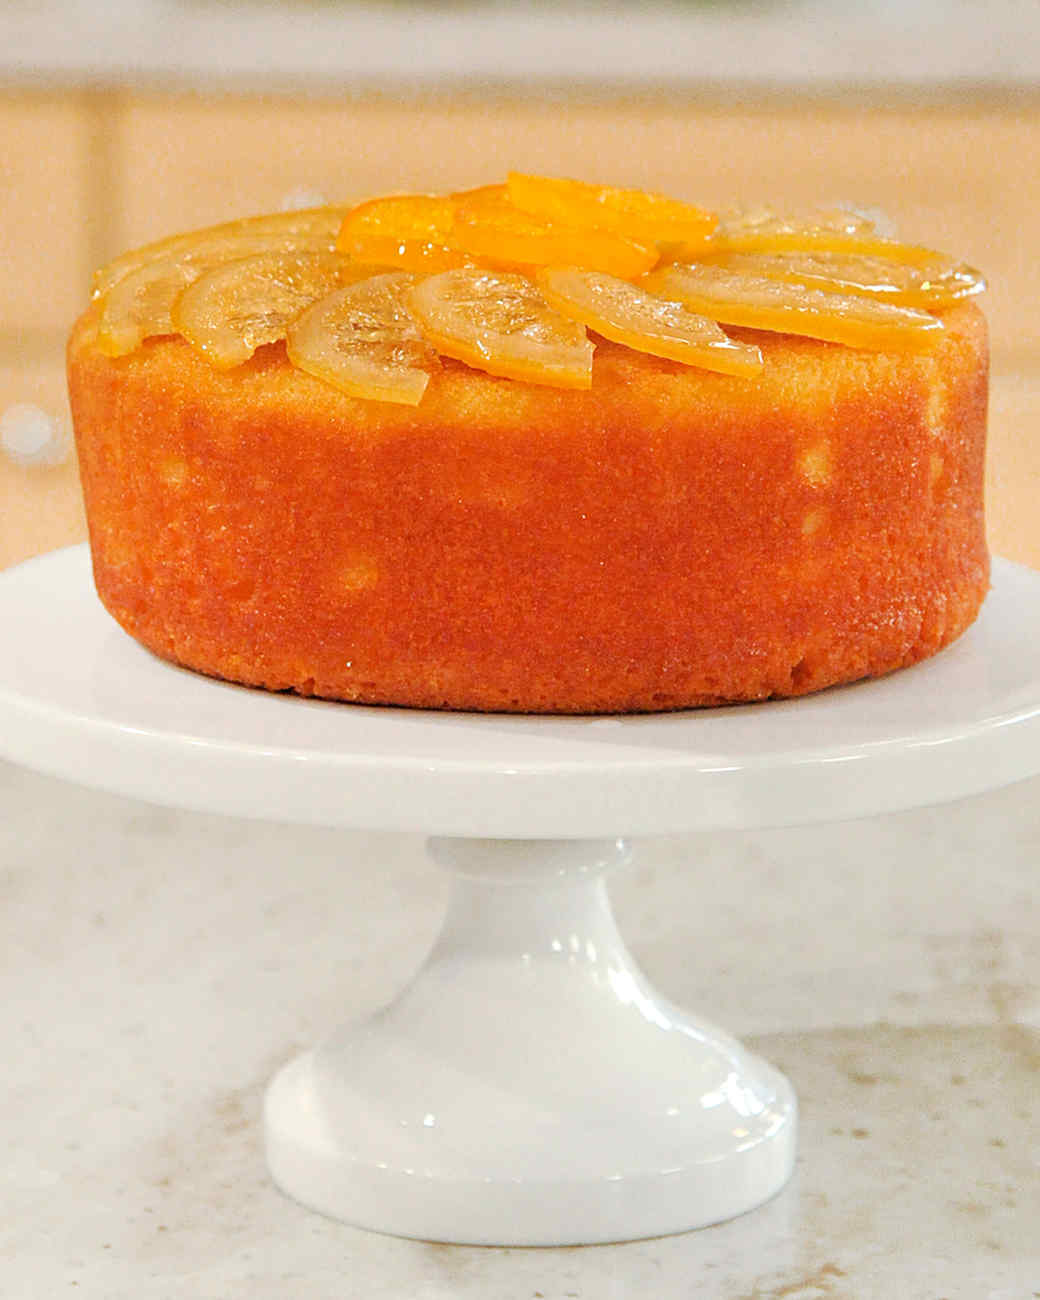 sour-lemon-cake-mslb7052.jpg